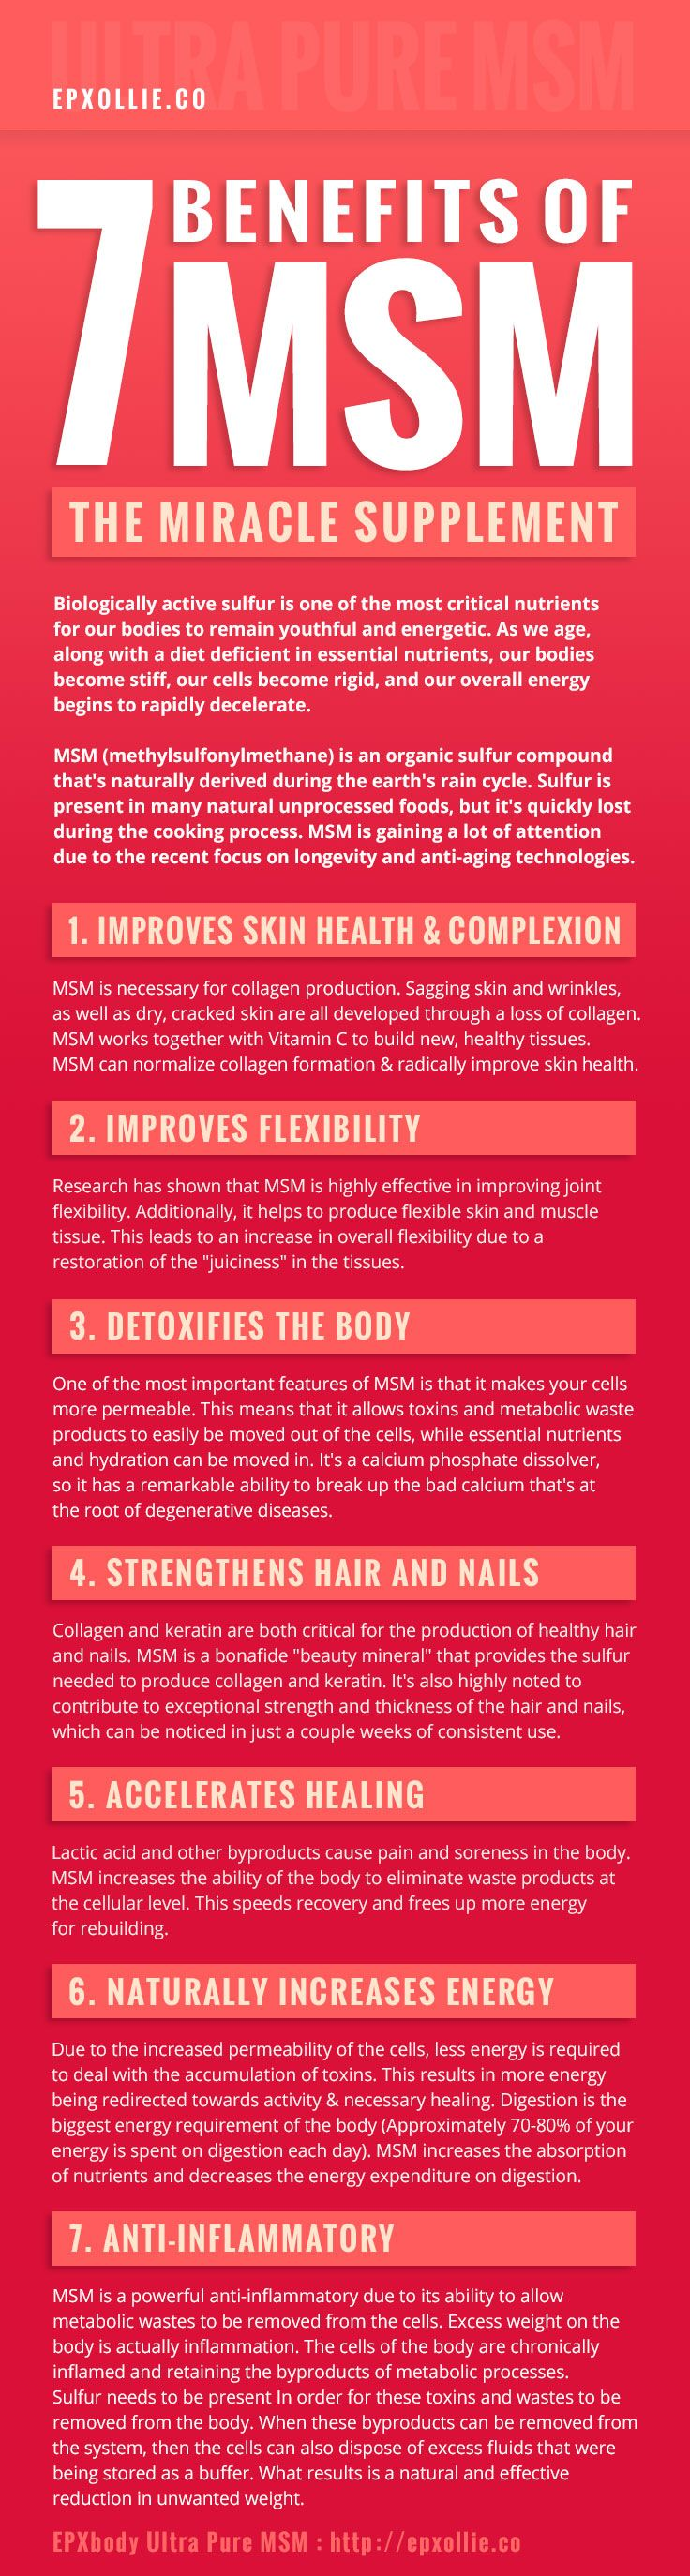 MSM Supplement Benefits - MSM improves joints, skin health, allergies, gut health, detoxifies the body, increases energy, accelerates healing, strengthens hair and nails, and is a powerful anti-inflammatory - EPXollie.co